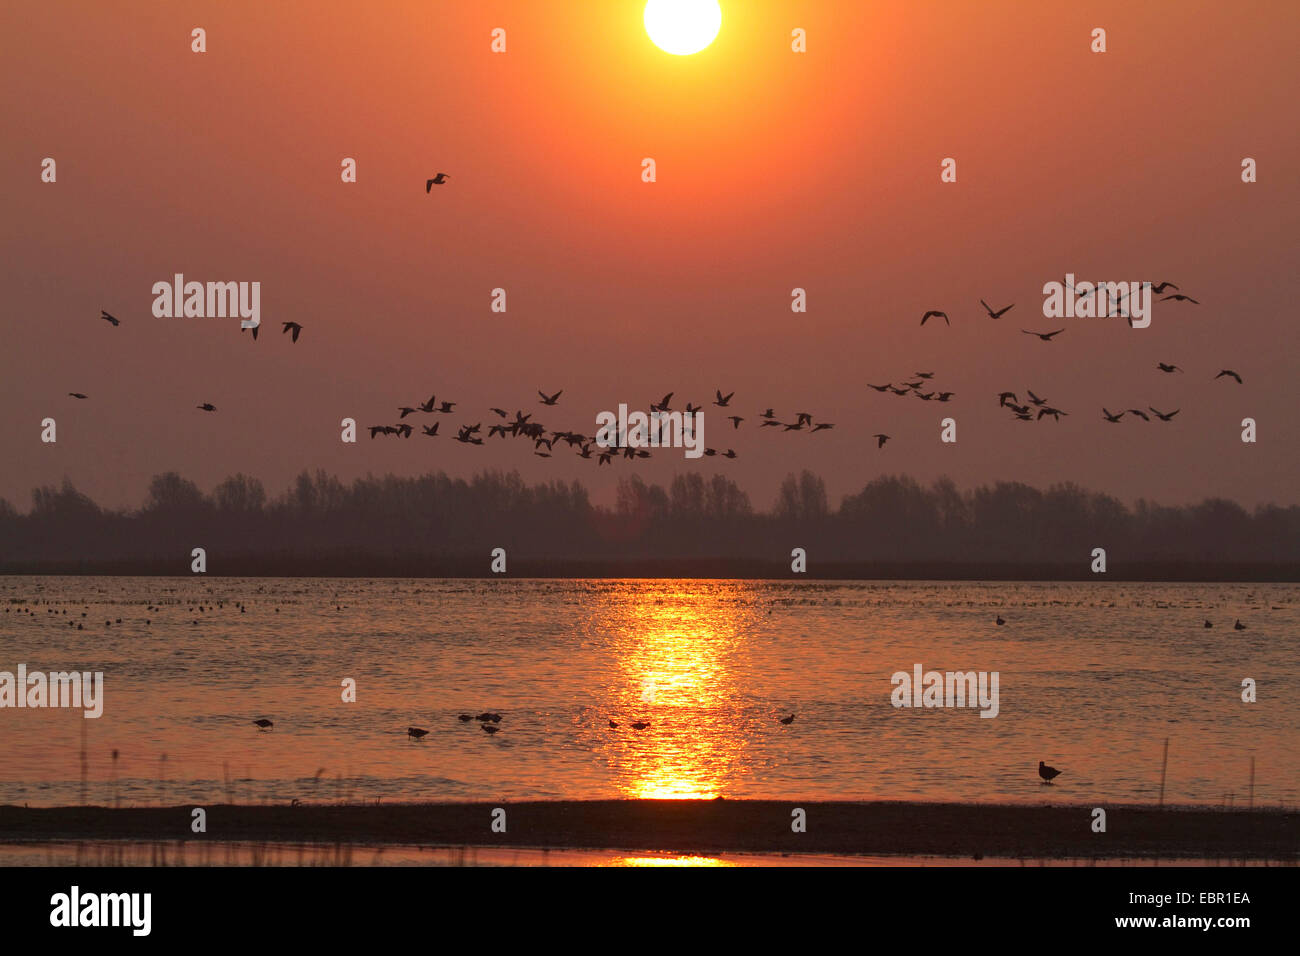 barnacle goose (Branta leucopsis), sunrise over a nature reserve in Holland with barnacle geese, Netherlands - Stock Image